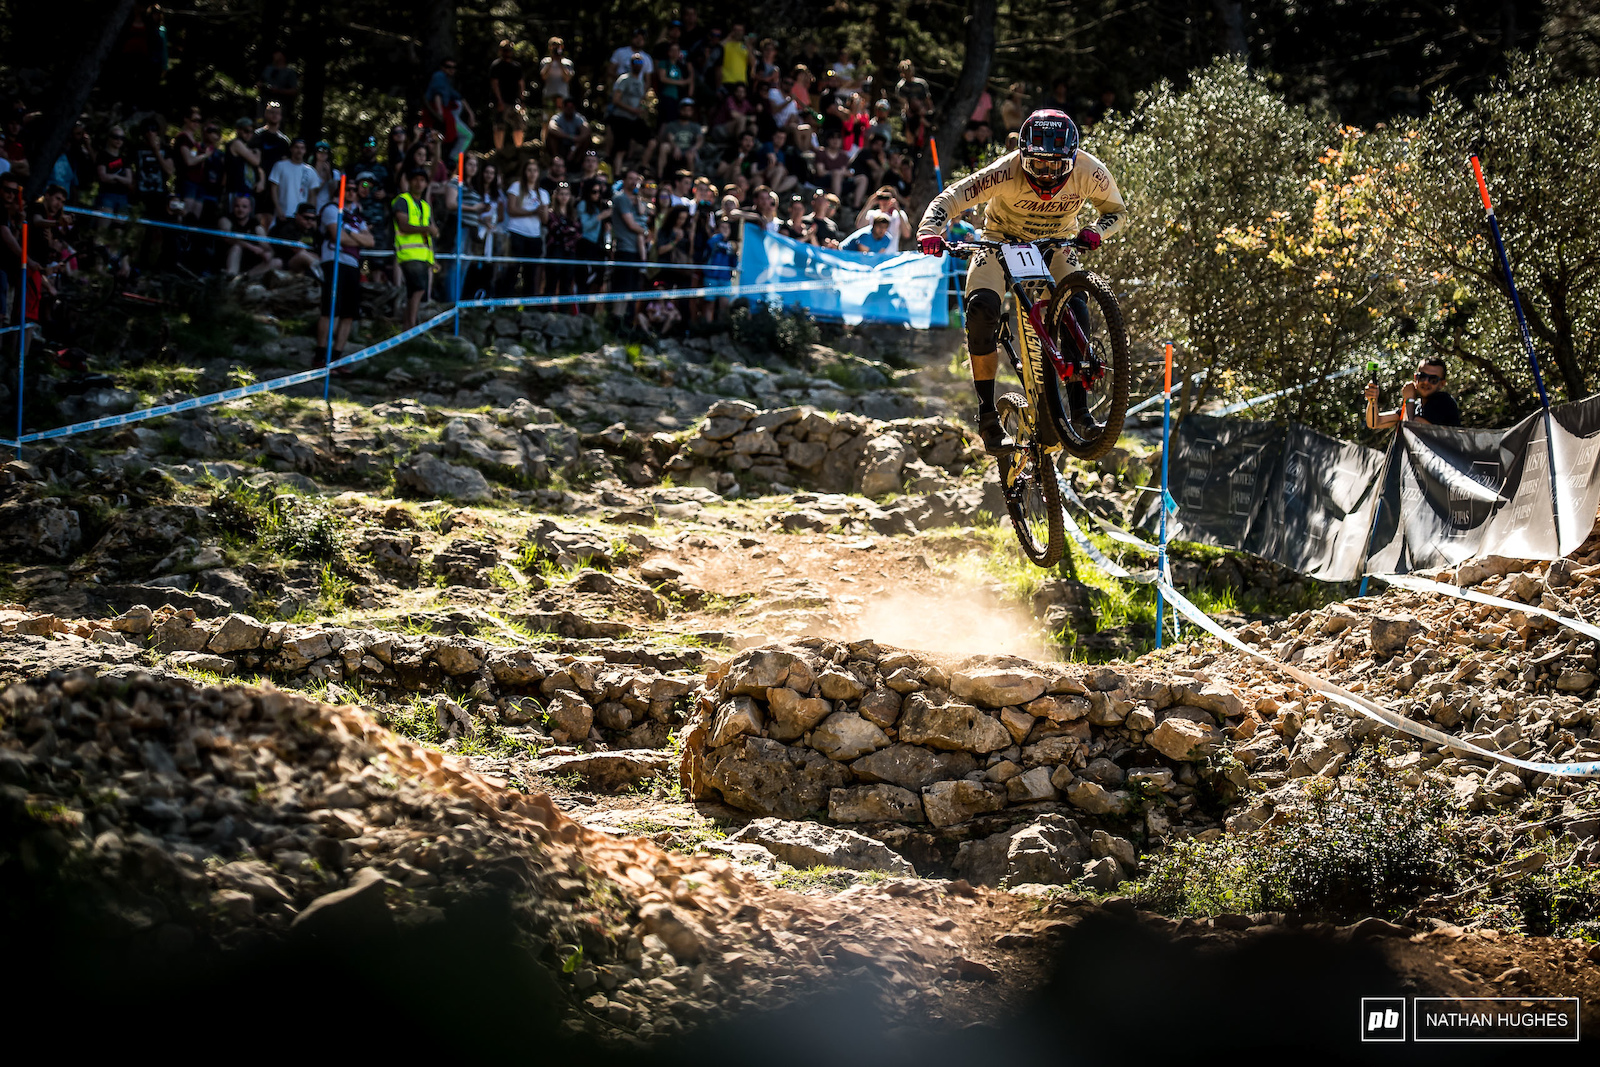 Amaury Pierron doing his new team proud hucking into 7th.